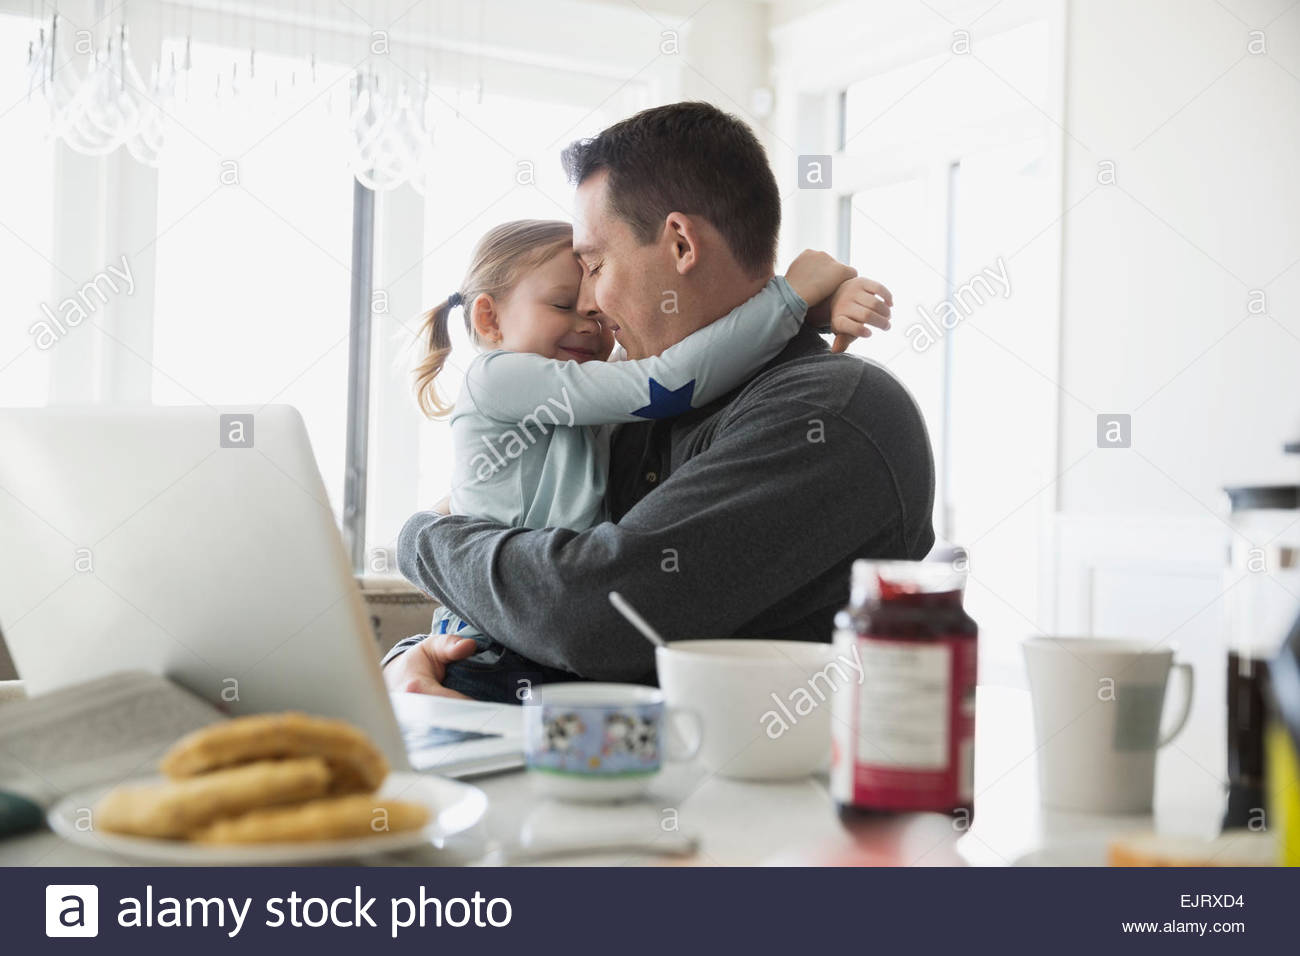 Affectionate father and daughter hugging tenderly in kitchen Stock Photo